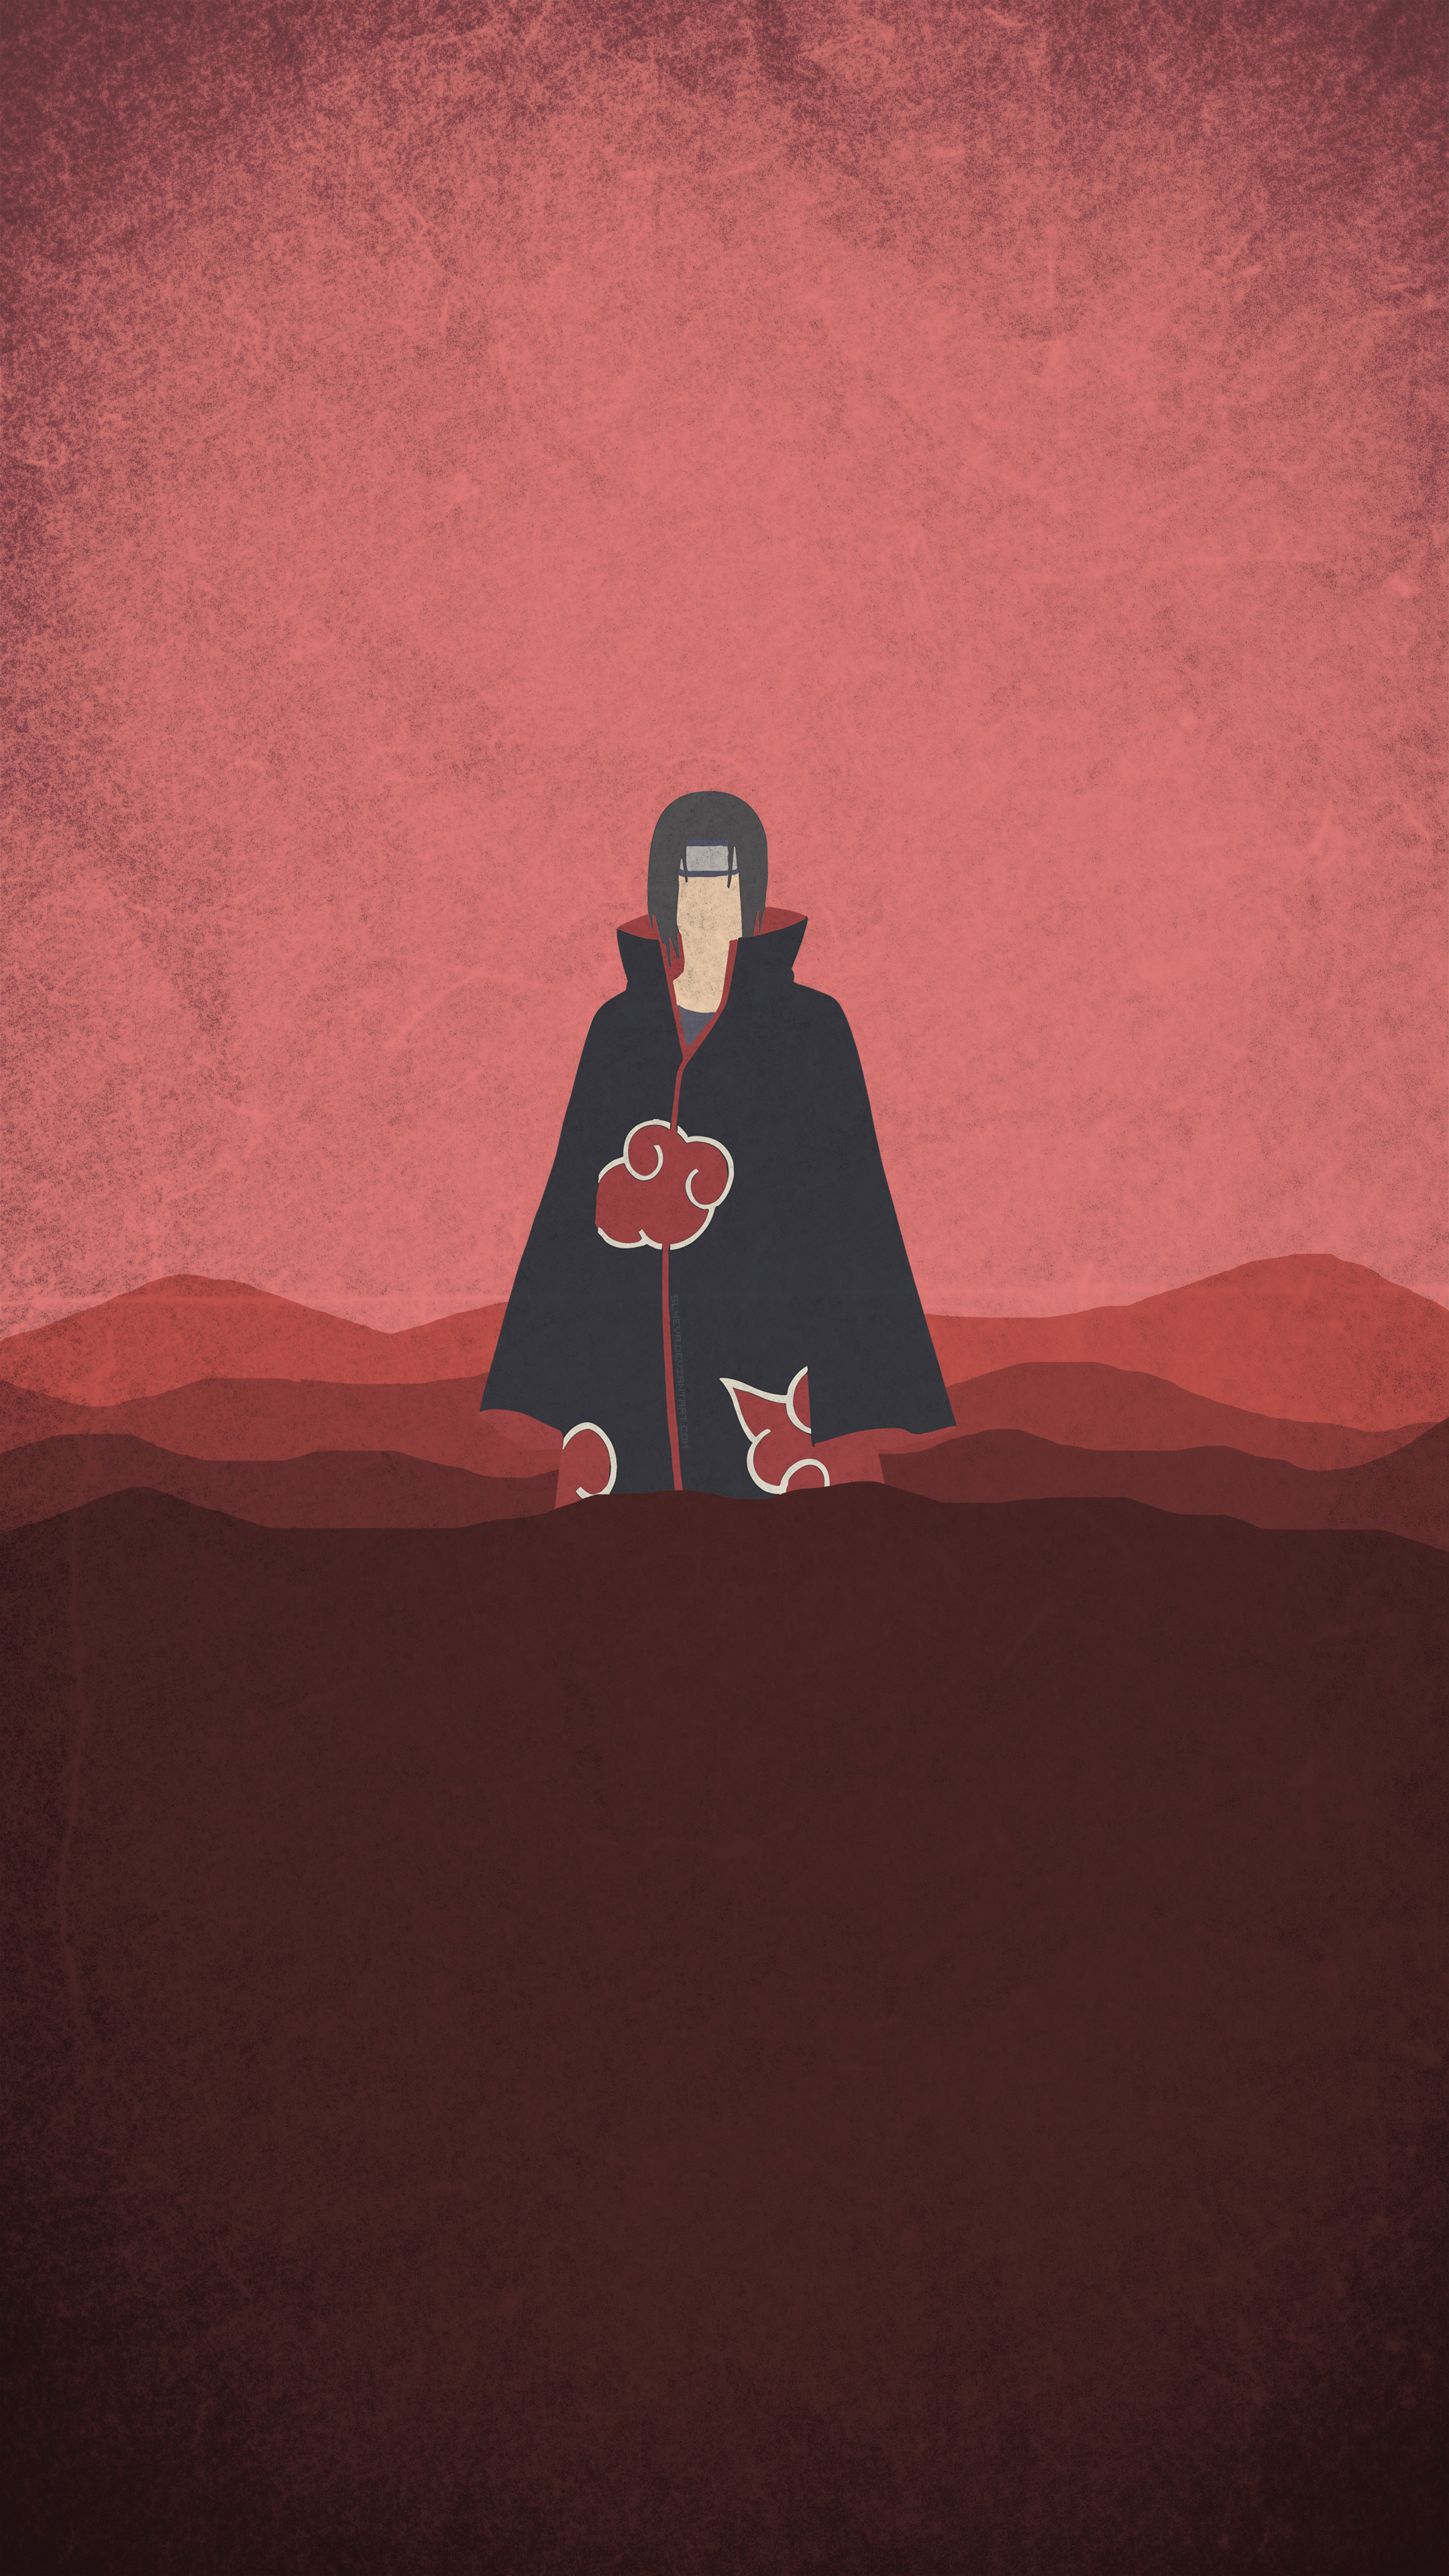 Itachi Live Wallpaper 10 Badass Itachi Uchiha Wallpapers For Iphone And Android The